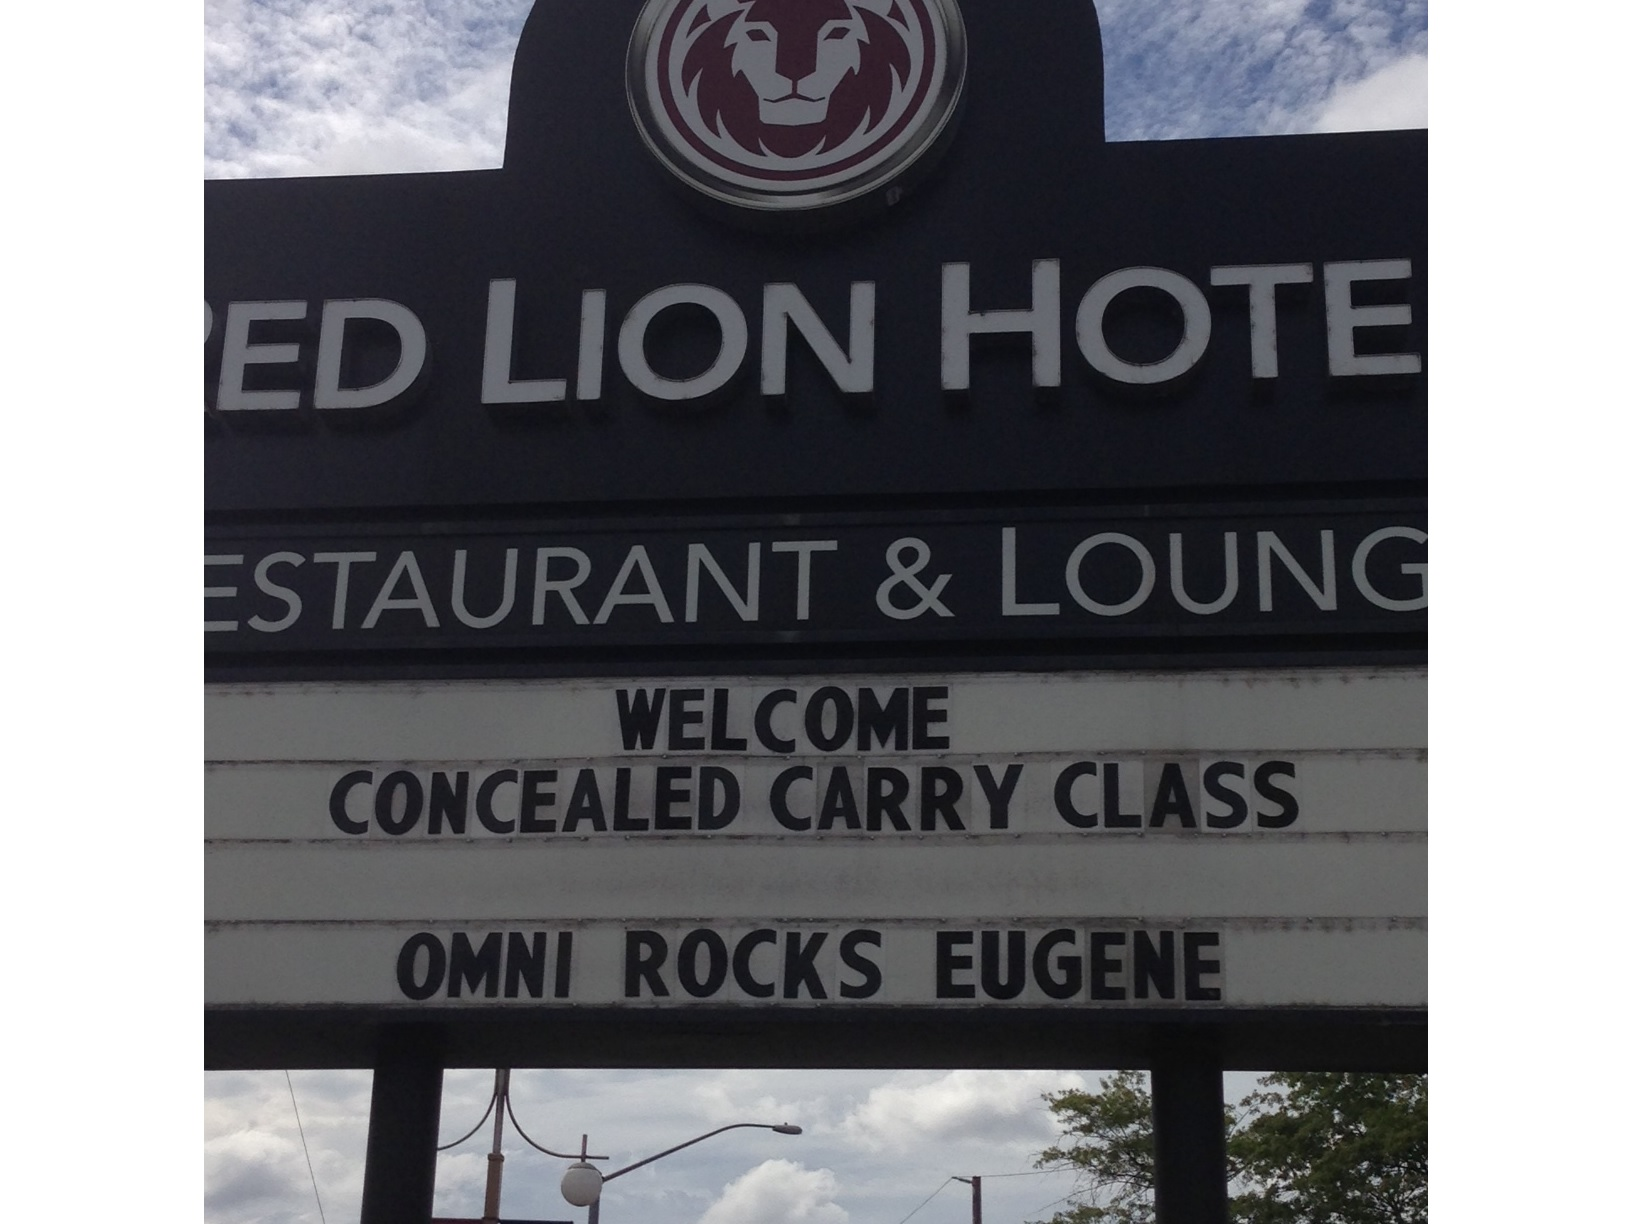 Do we really want the stoned out people of Eugene, Or carrying?